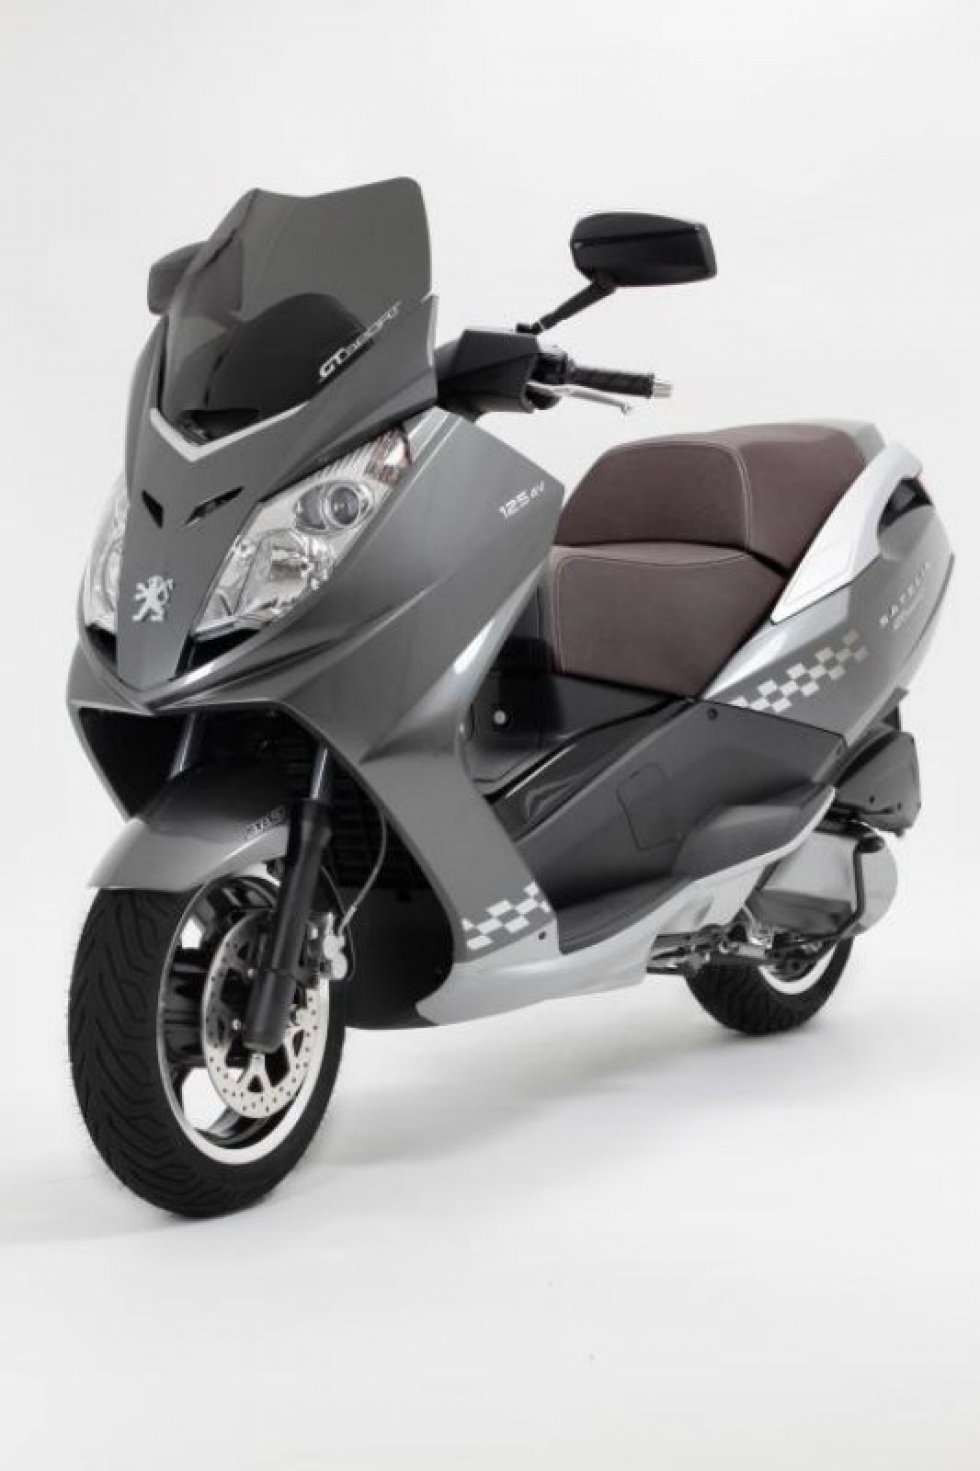 scooter neuf peugeot satelis gt sport 125 cc vente scooter la seyne sur mer toulon l. Black Bedroom Furniture Sets. Home Design Ideas